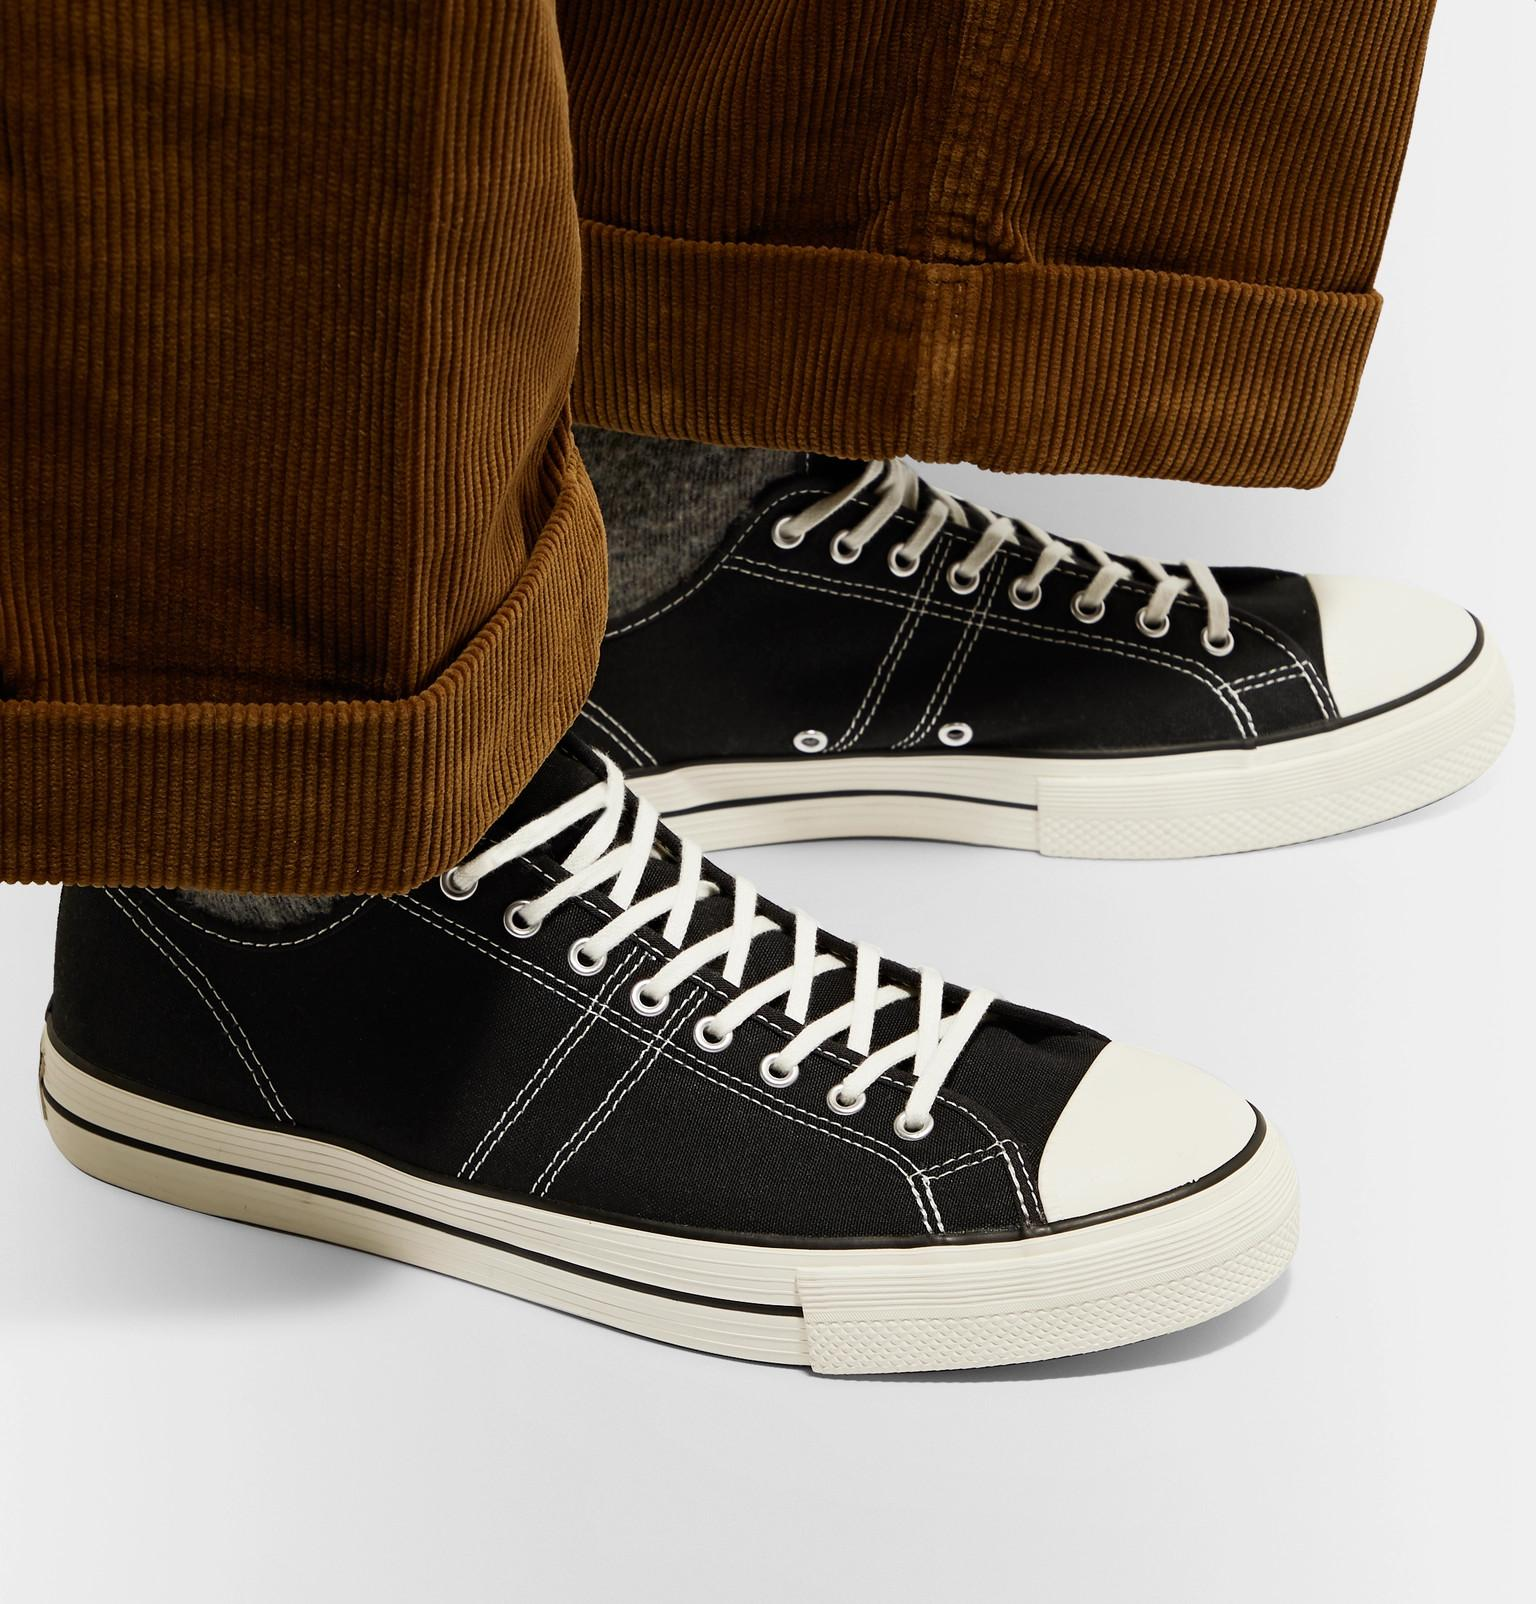 0881c771d6c Converse - Black Lucky Star Ox Canvas Sneakers for Men - Lyst. View  fullscreen